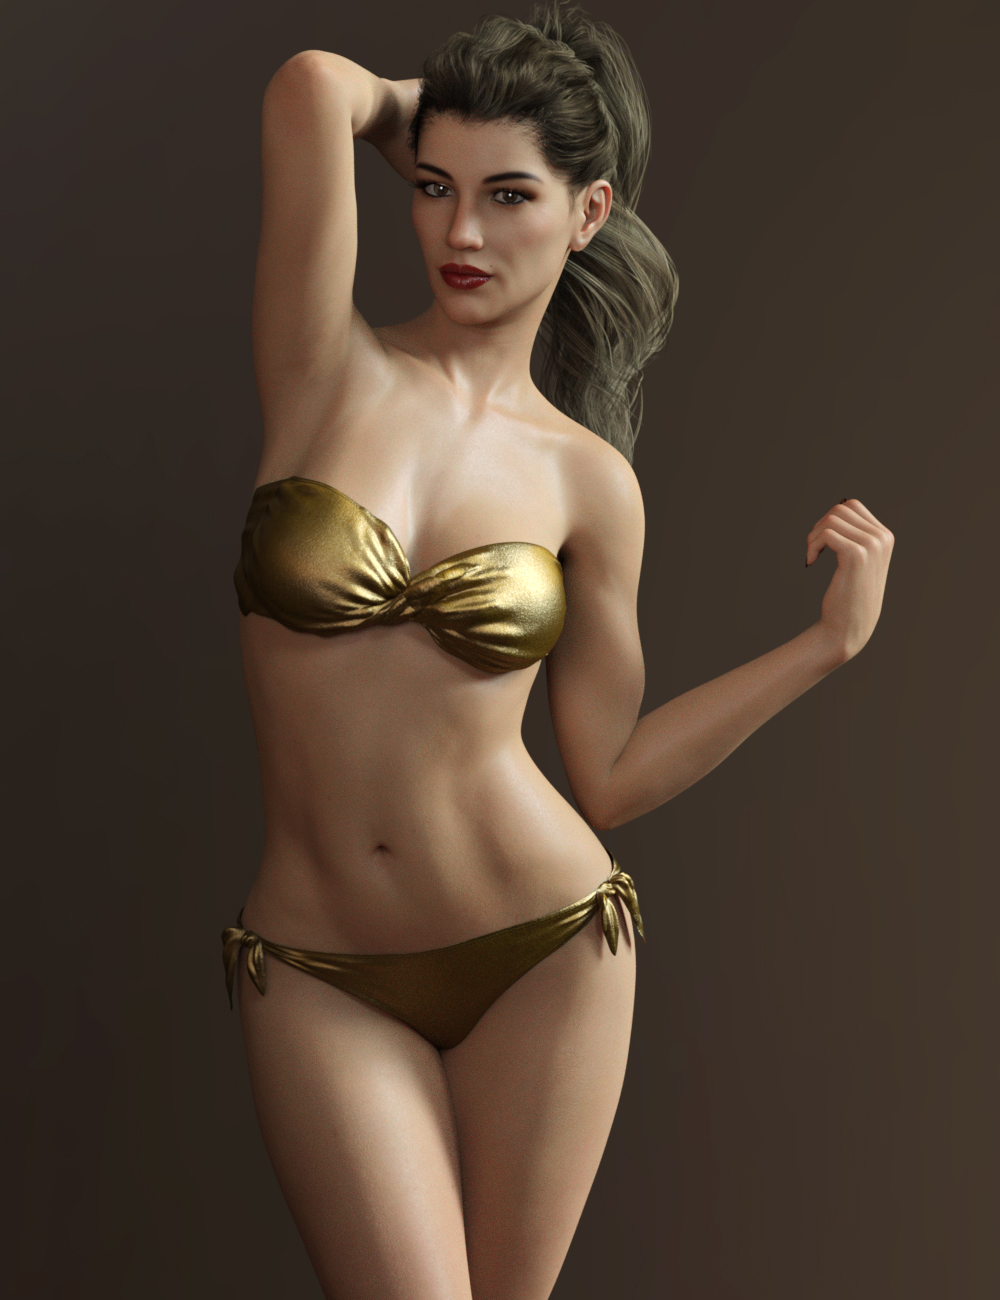 FW Rebekah HD for Victoria 8 by: Fred Winkler Art, 3D Models by Daz 3D